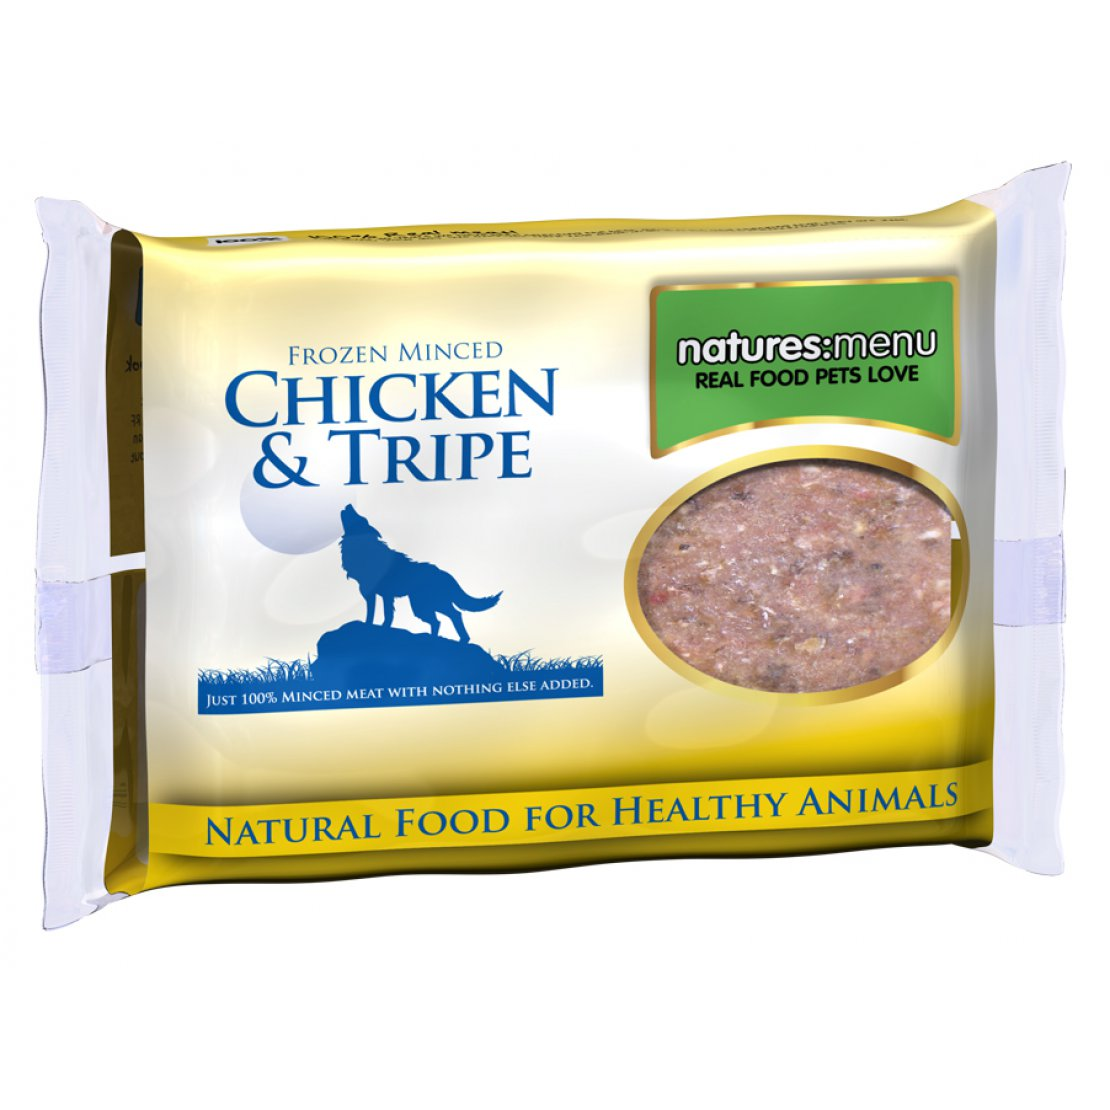 ONLY AVAILABLE FOR LOCAL DELIVERY. Natures Menu Frozen Dog Food. Chicken & Tripe Mince